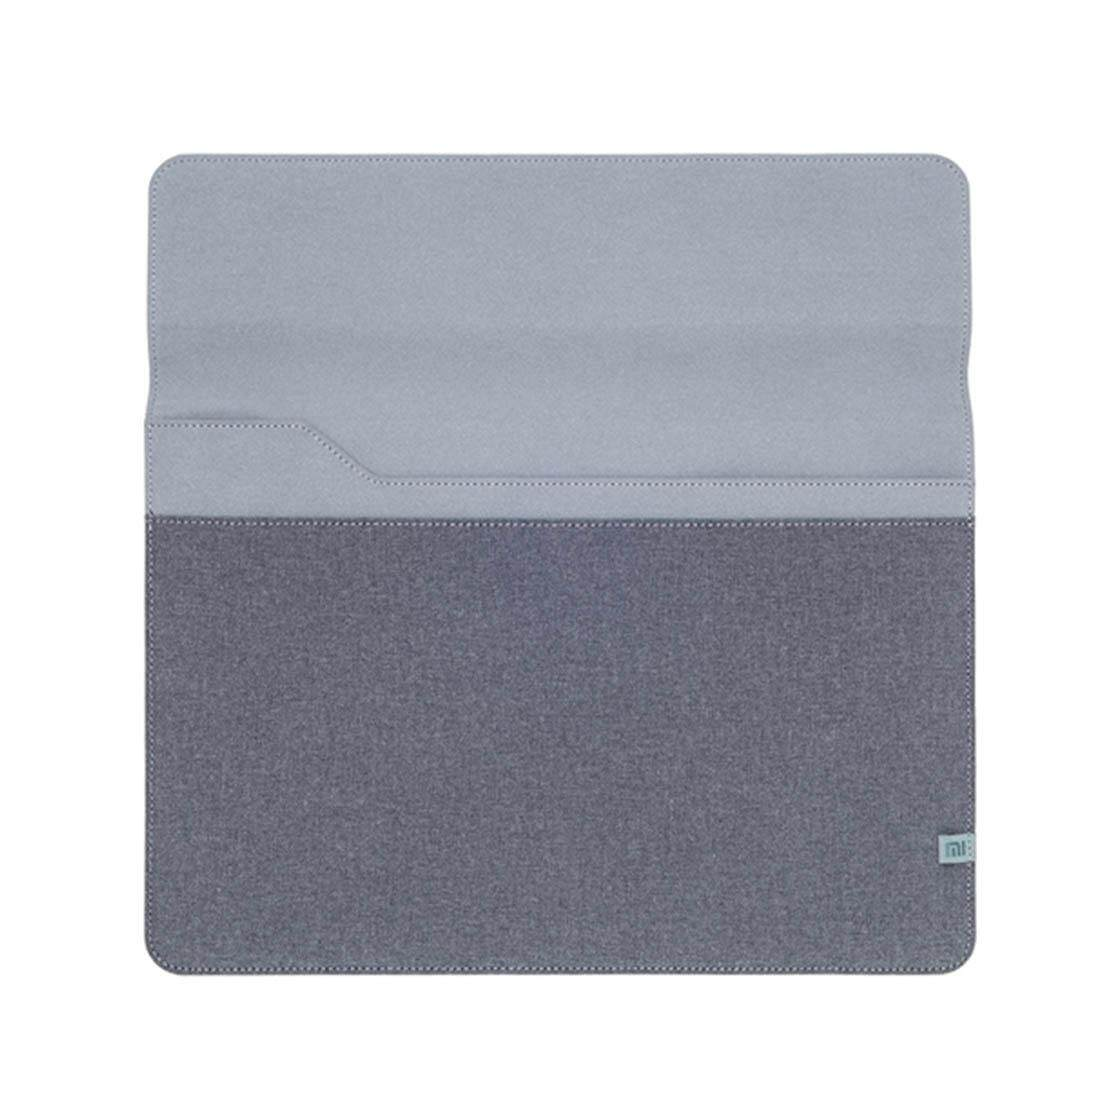 Fitur Original Xiaomi Laptop Sleeve Envelope Business Bag Fiber Case Macbook Air 11 Inch Grey Matte Detail Gambar Inner Package For Mi Notebook 125 116